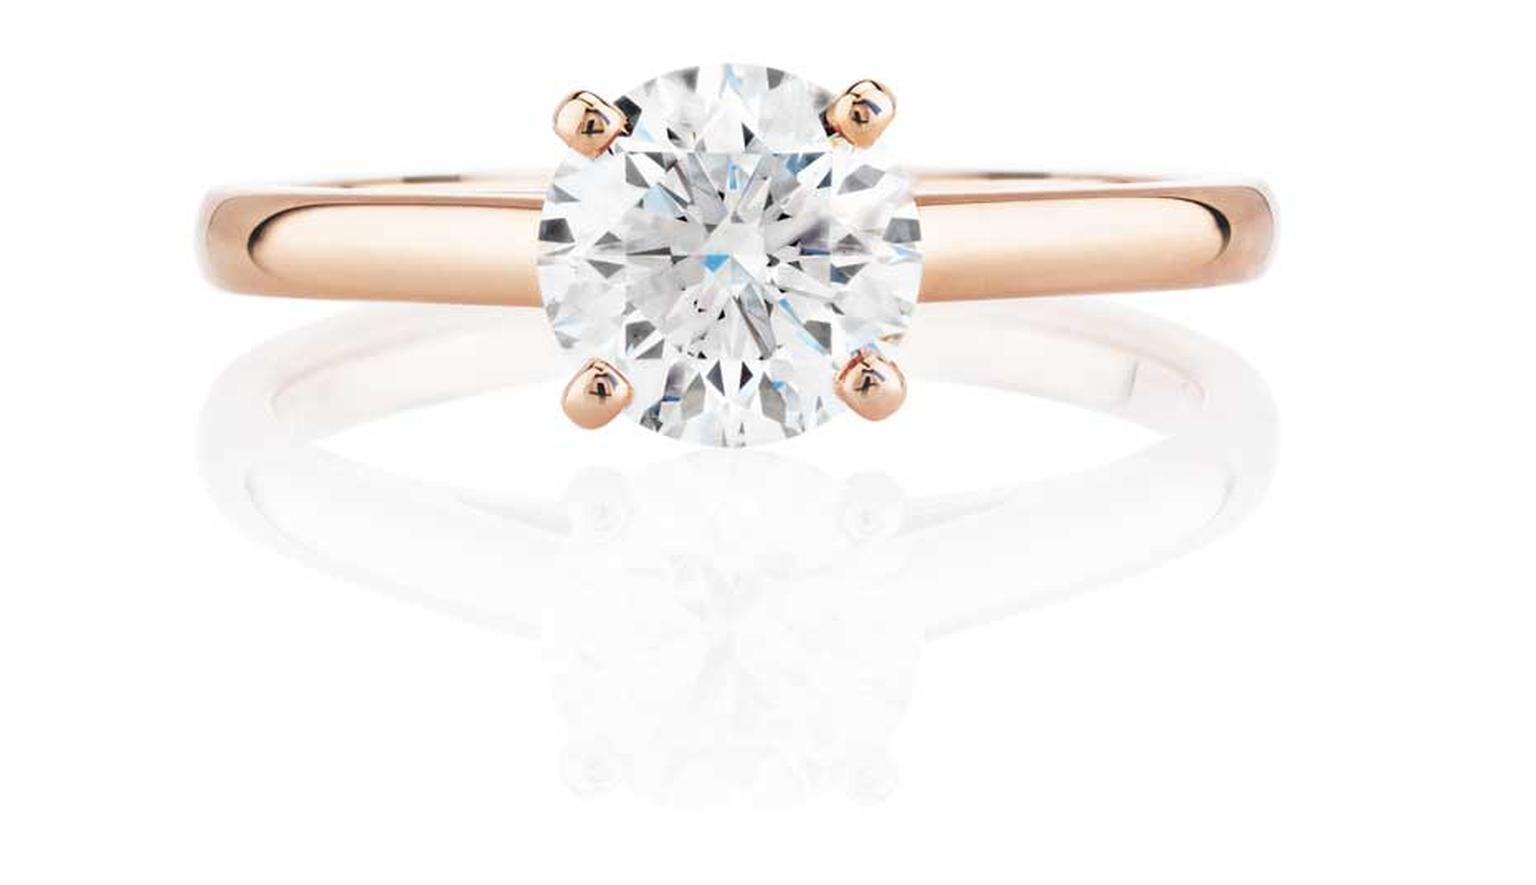 Simple and elegant, this De Beers rose gold engagement ring is flawless and illustrates perfectly how rose gold intensifies the bright white sparkle of a diamond.